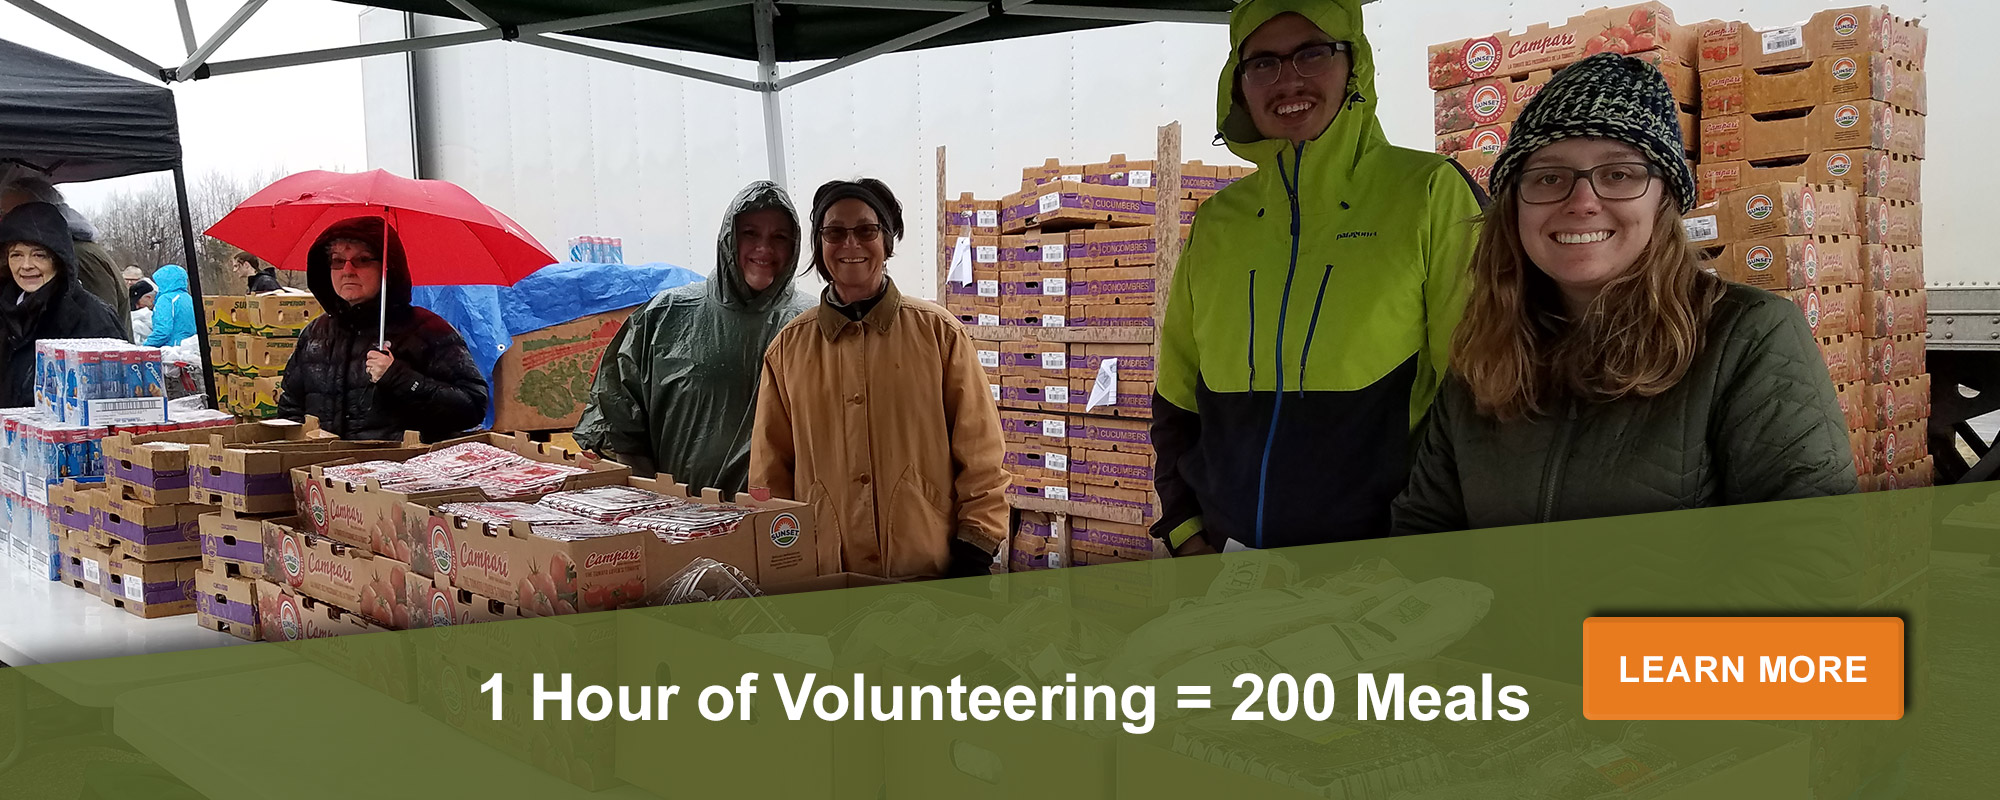 One hour of volunteering equals 200 meals. Learn more here.